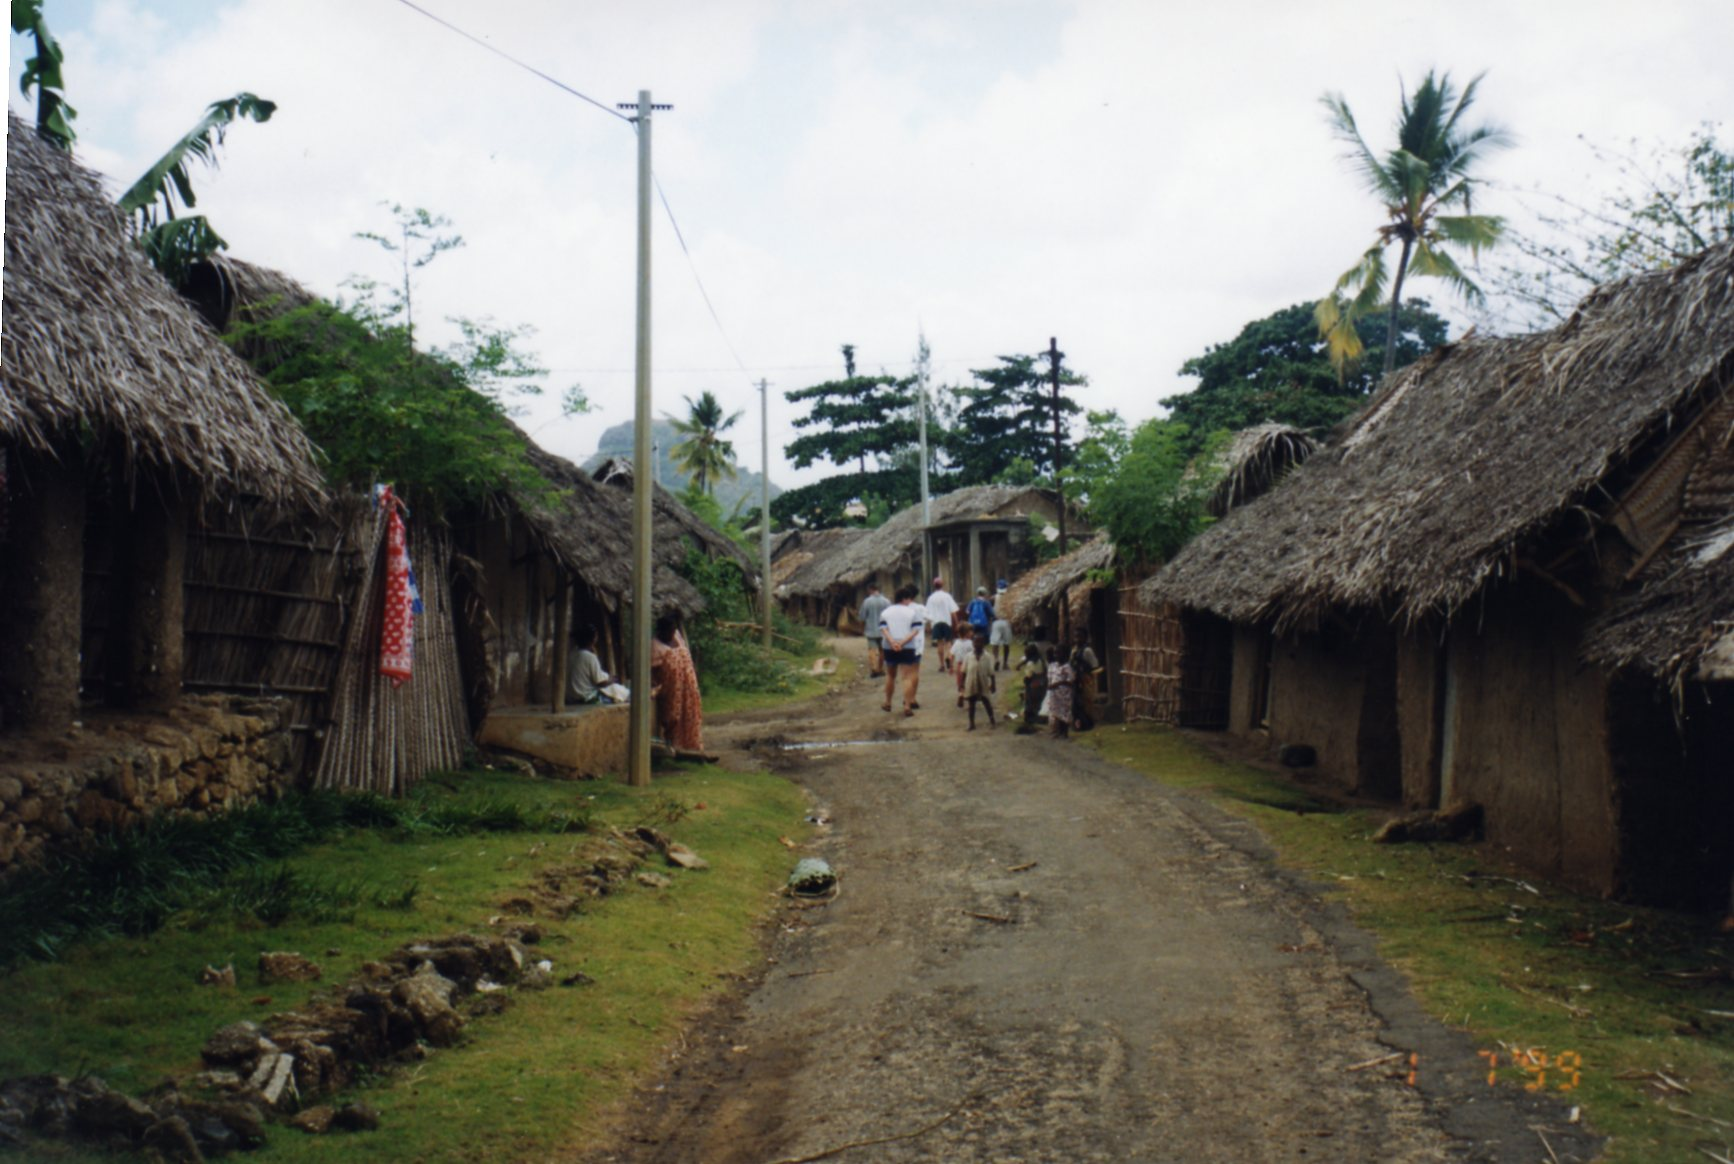 Walking around Nioumachoua with choruses of Bonjour!